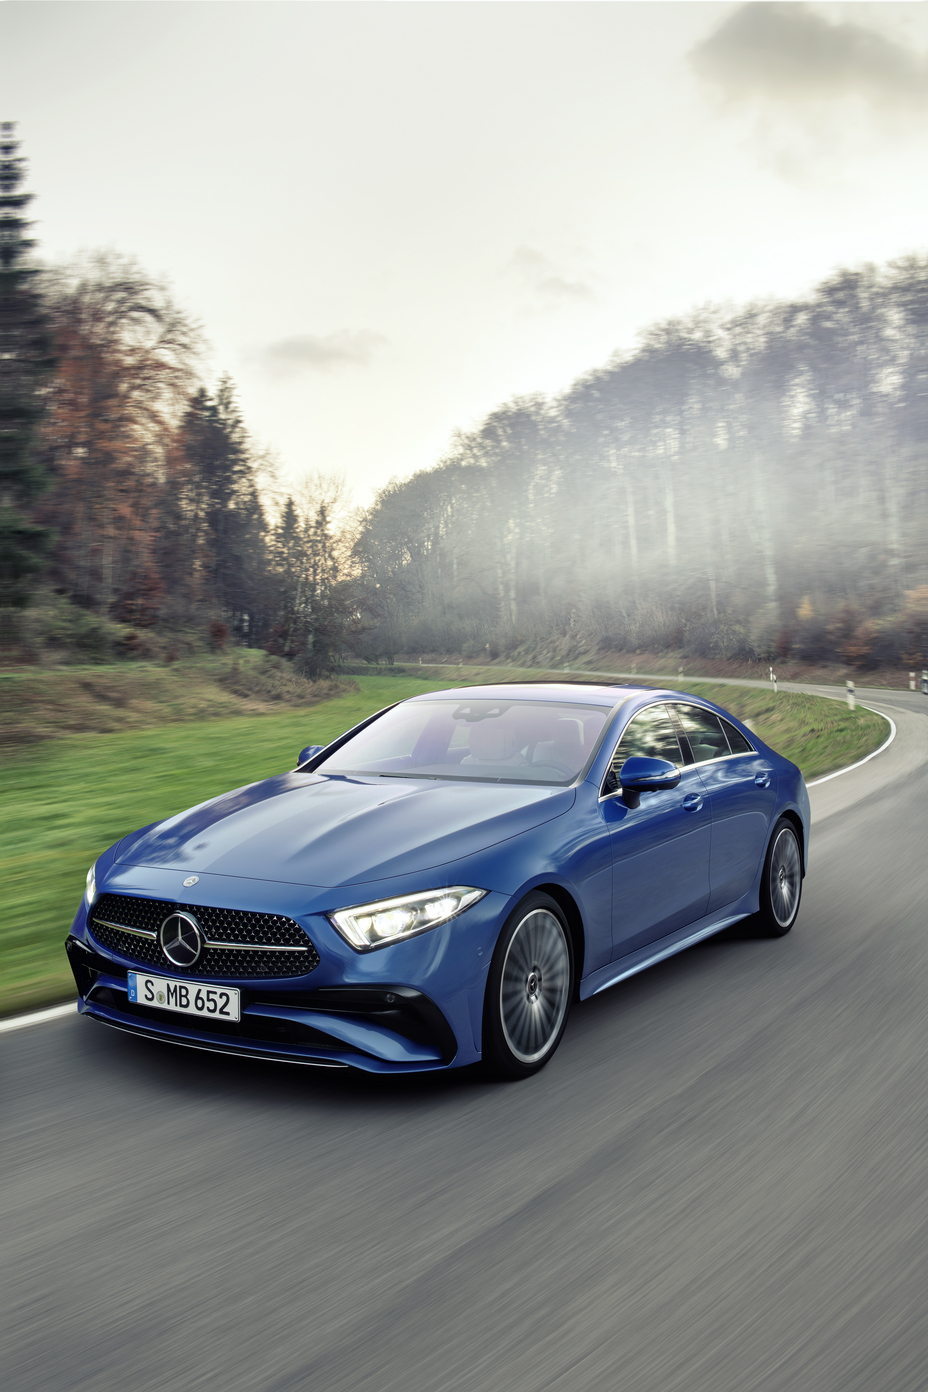 Mercedes Benz CLS Gets a Redesign